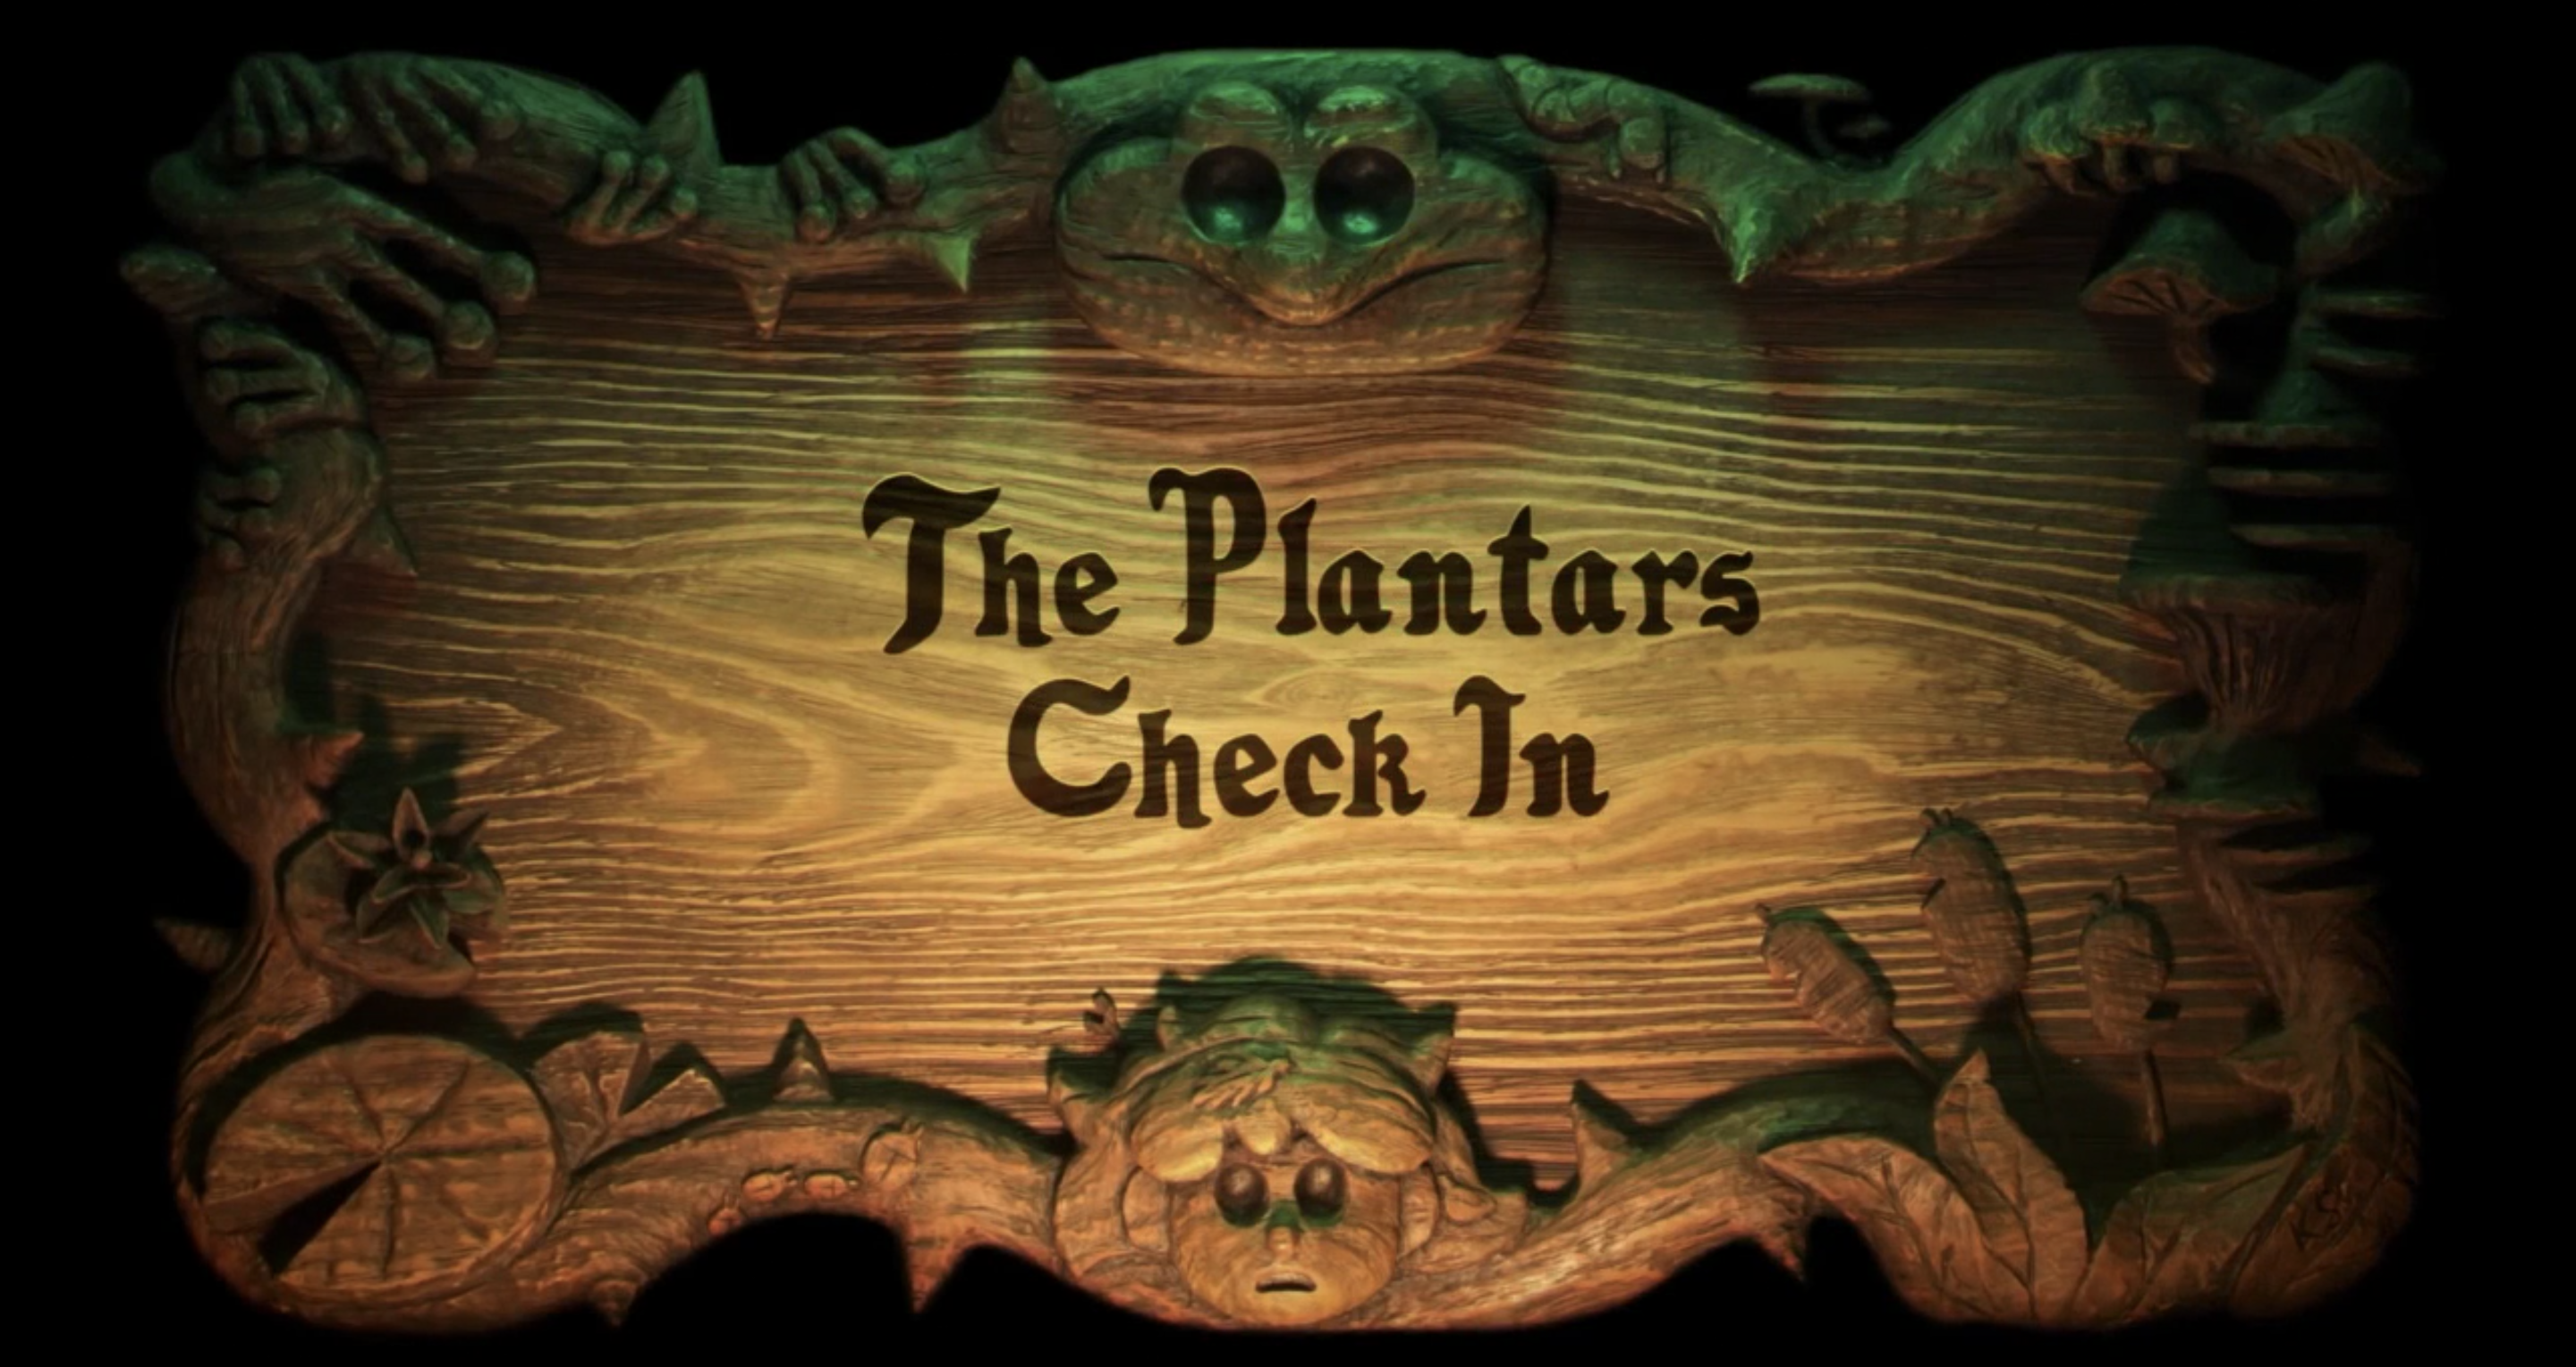 The Plantars Check In